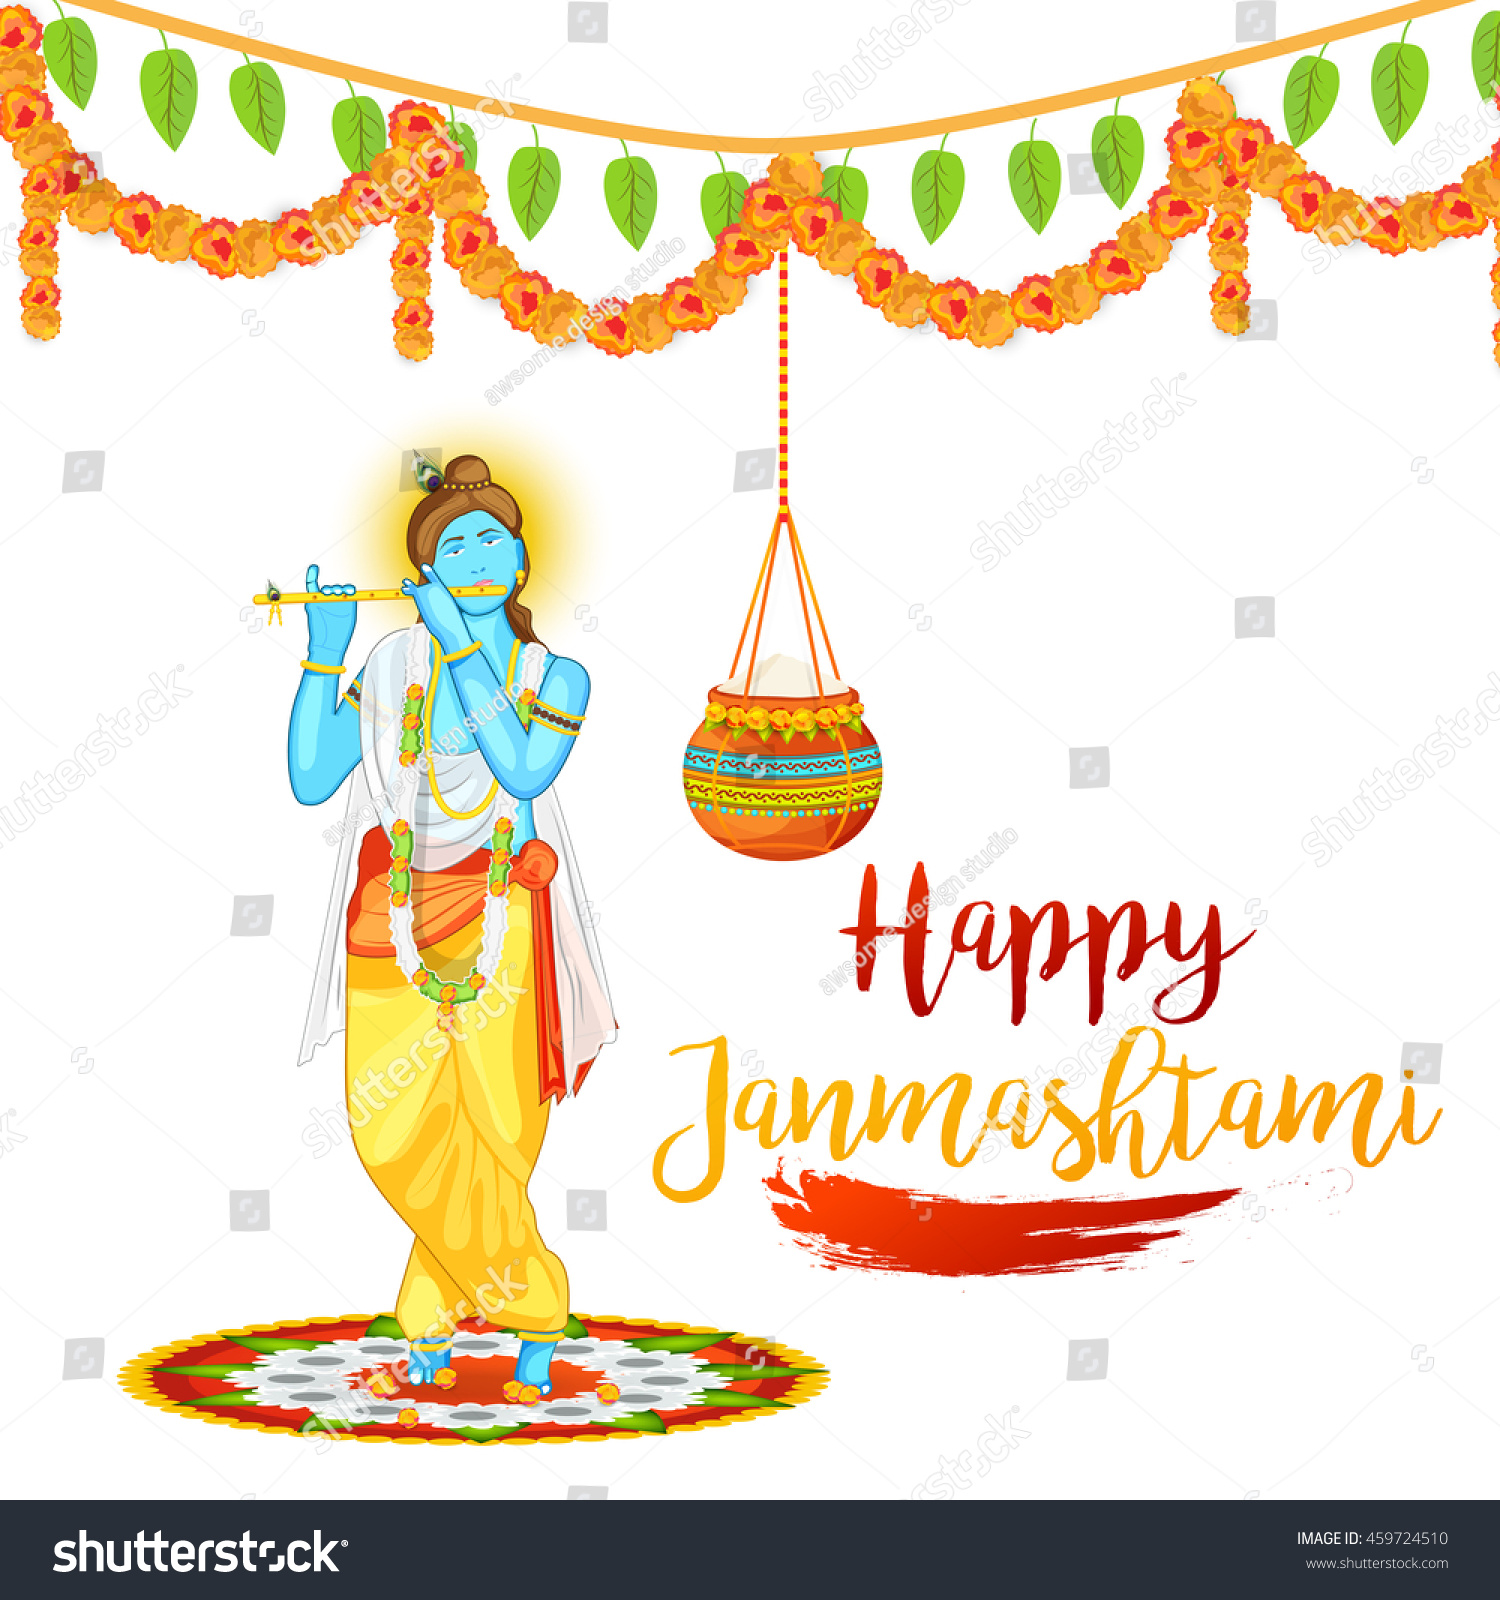 Creative illustration poster or banner for indian festival of janmashtami celebration